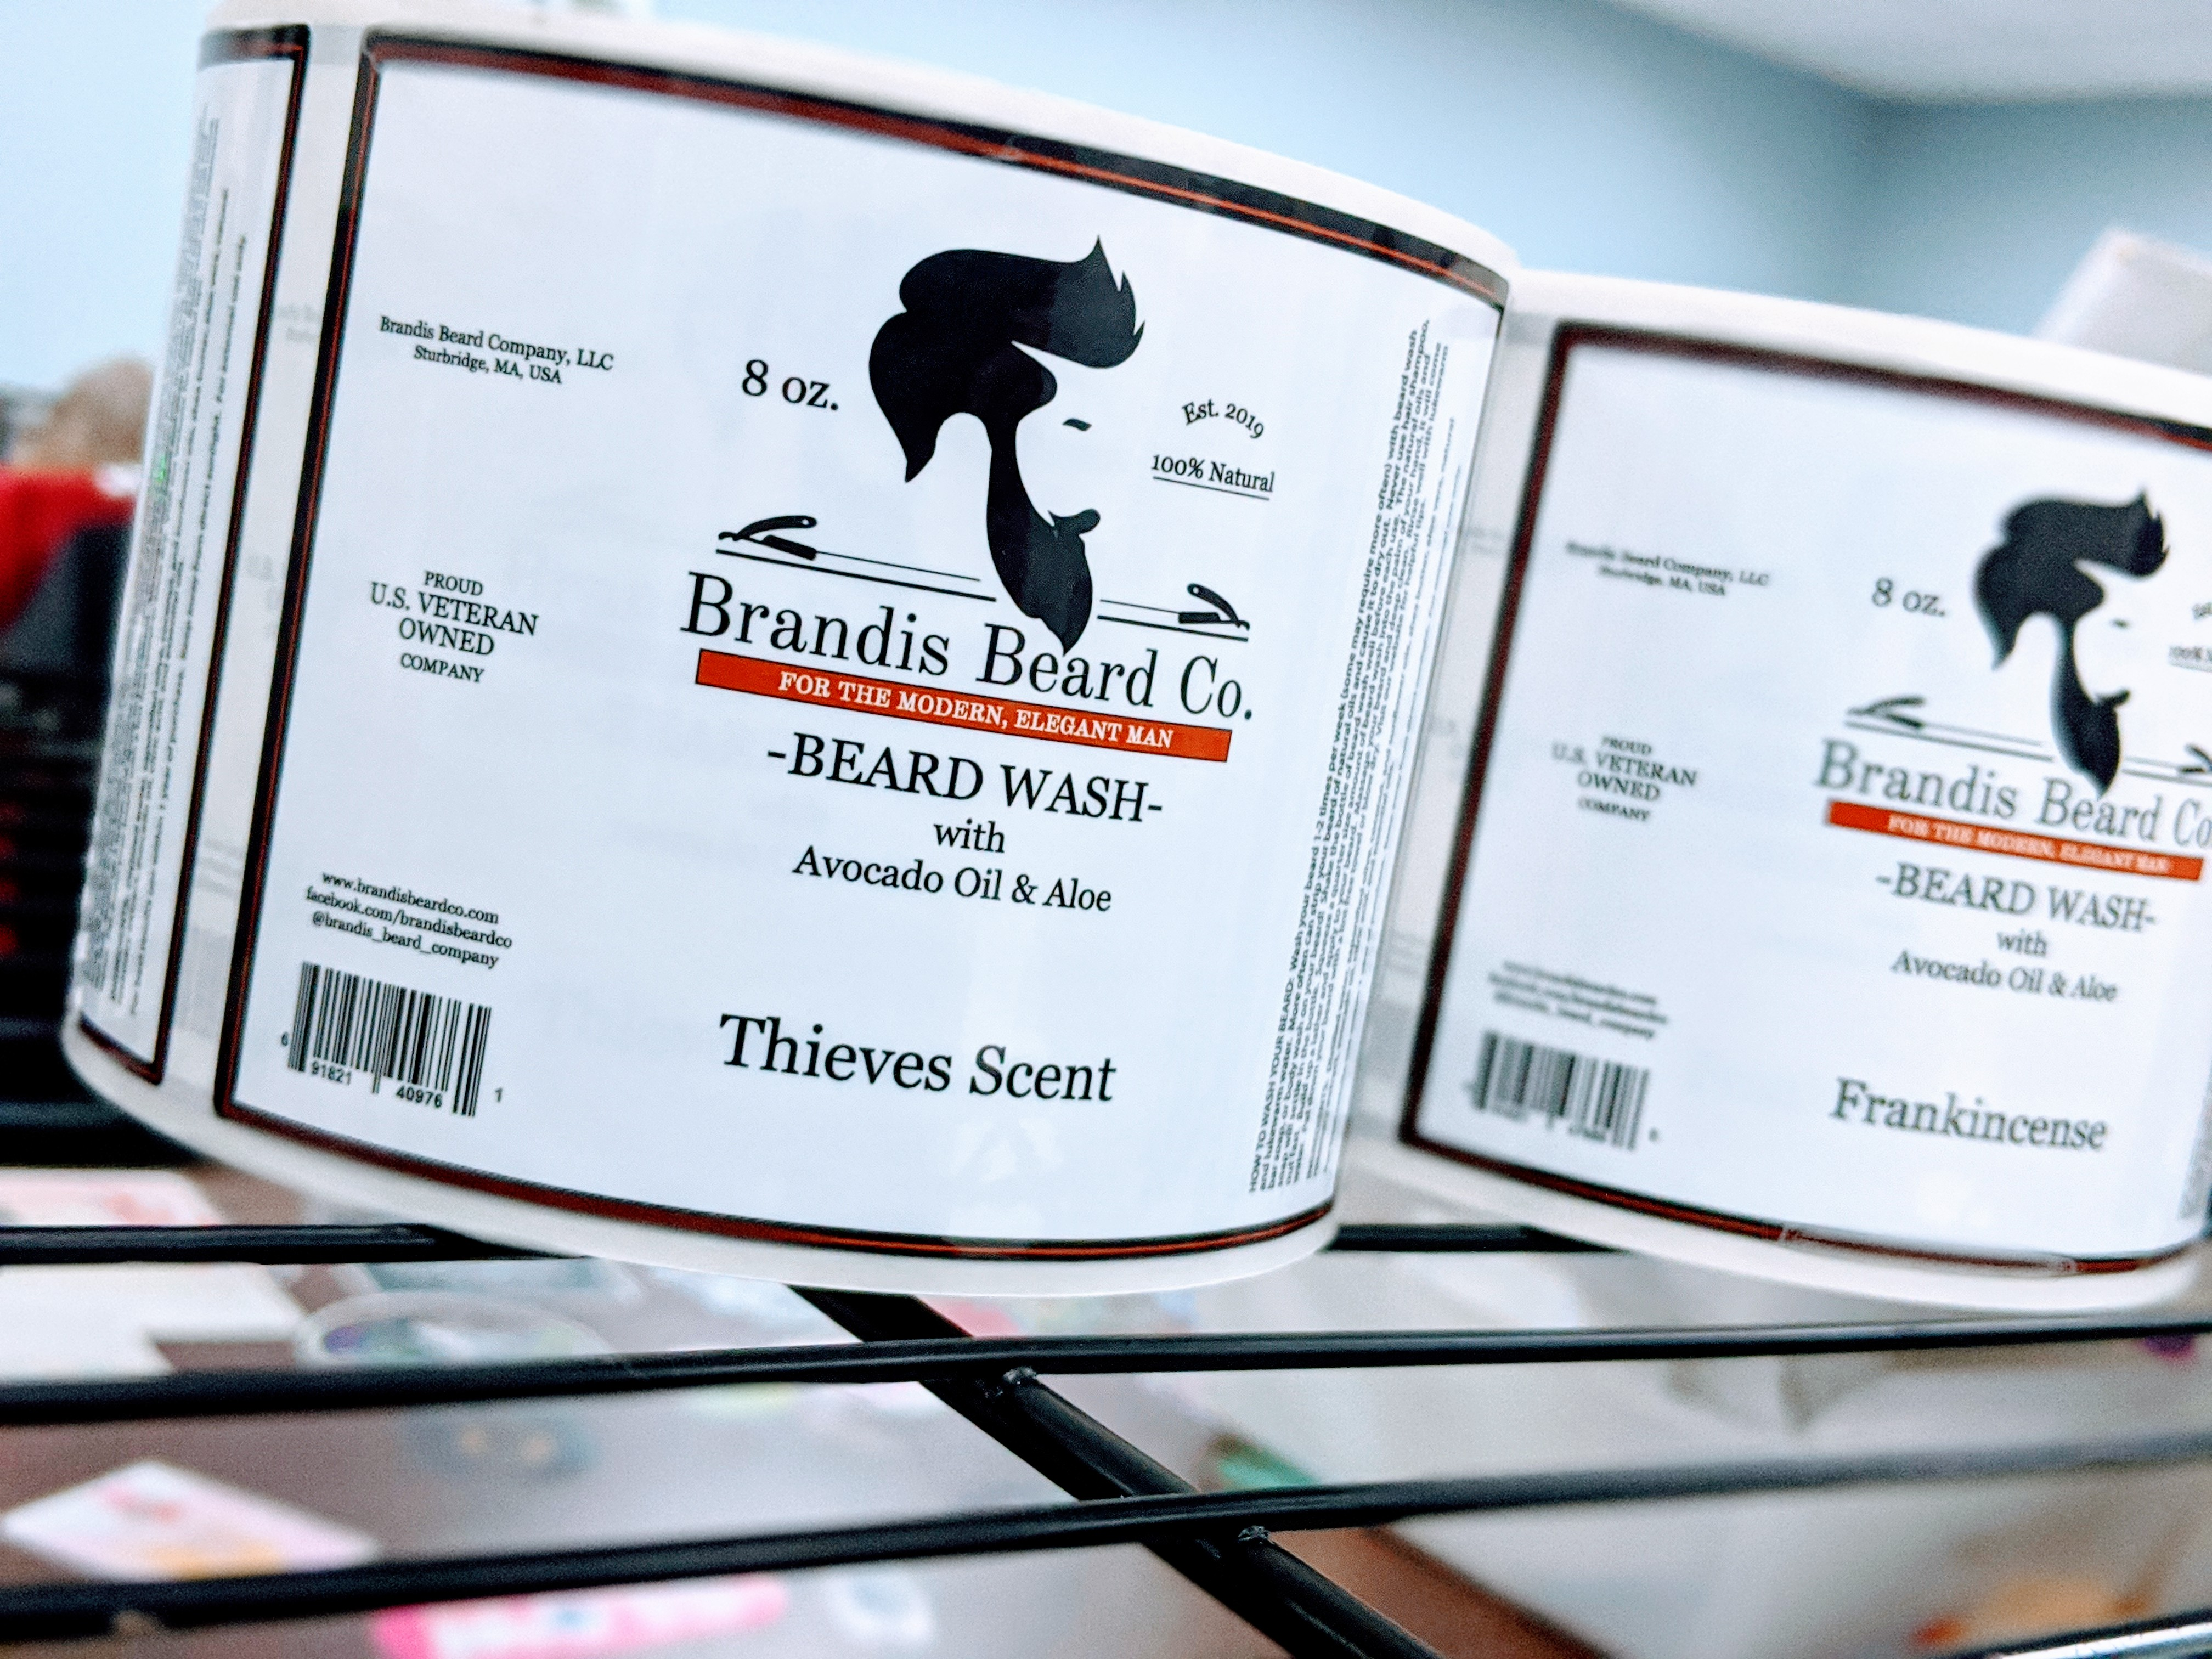 StickerGiant-Brandis-Beard-Co-Wash-custom-printed-Labels-on-a-roll-2020